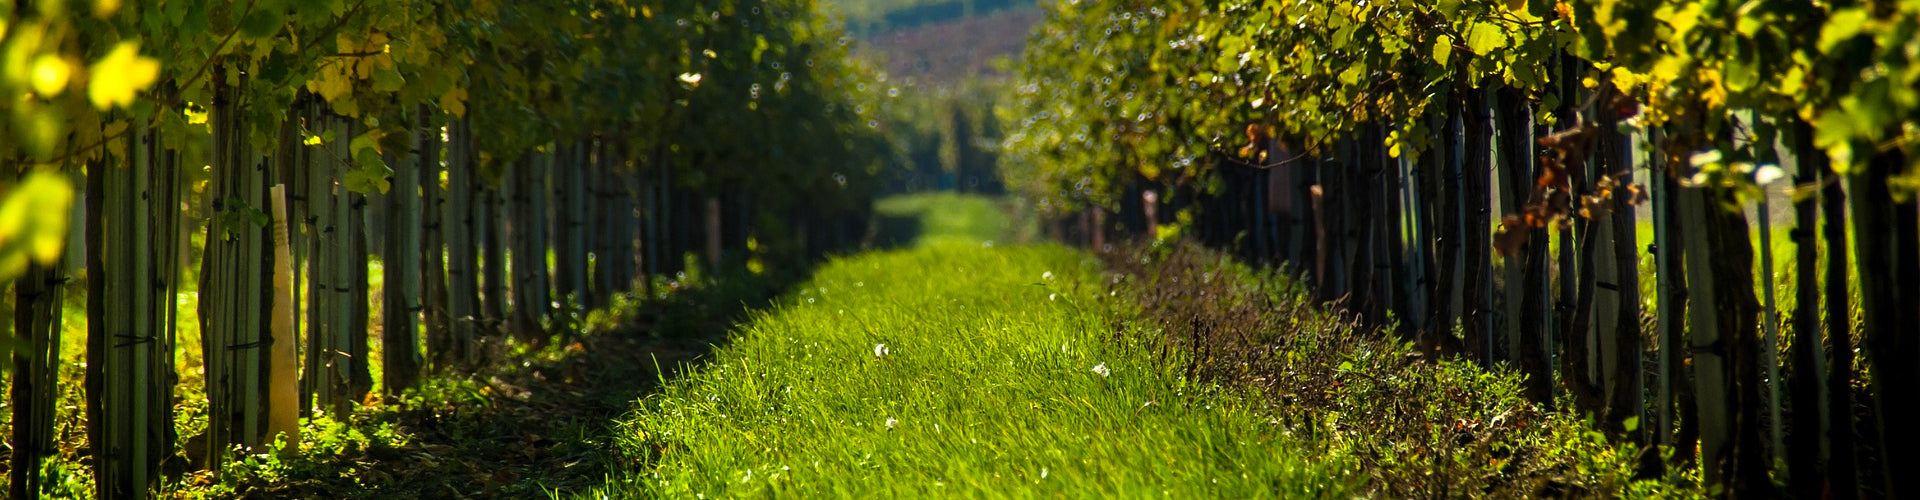 Organic Vines in Vineyard with crop cover